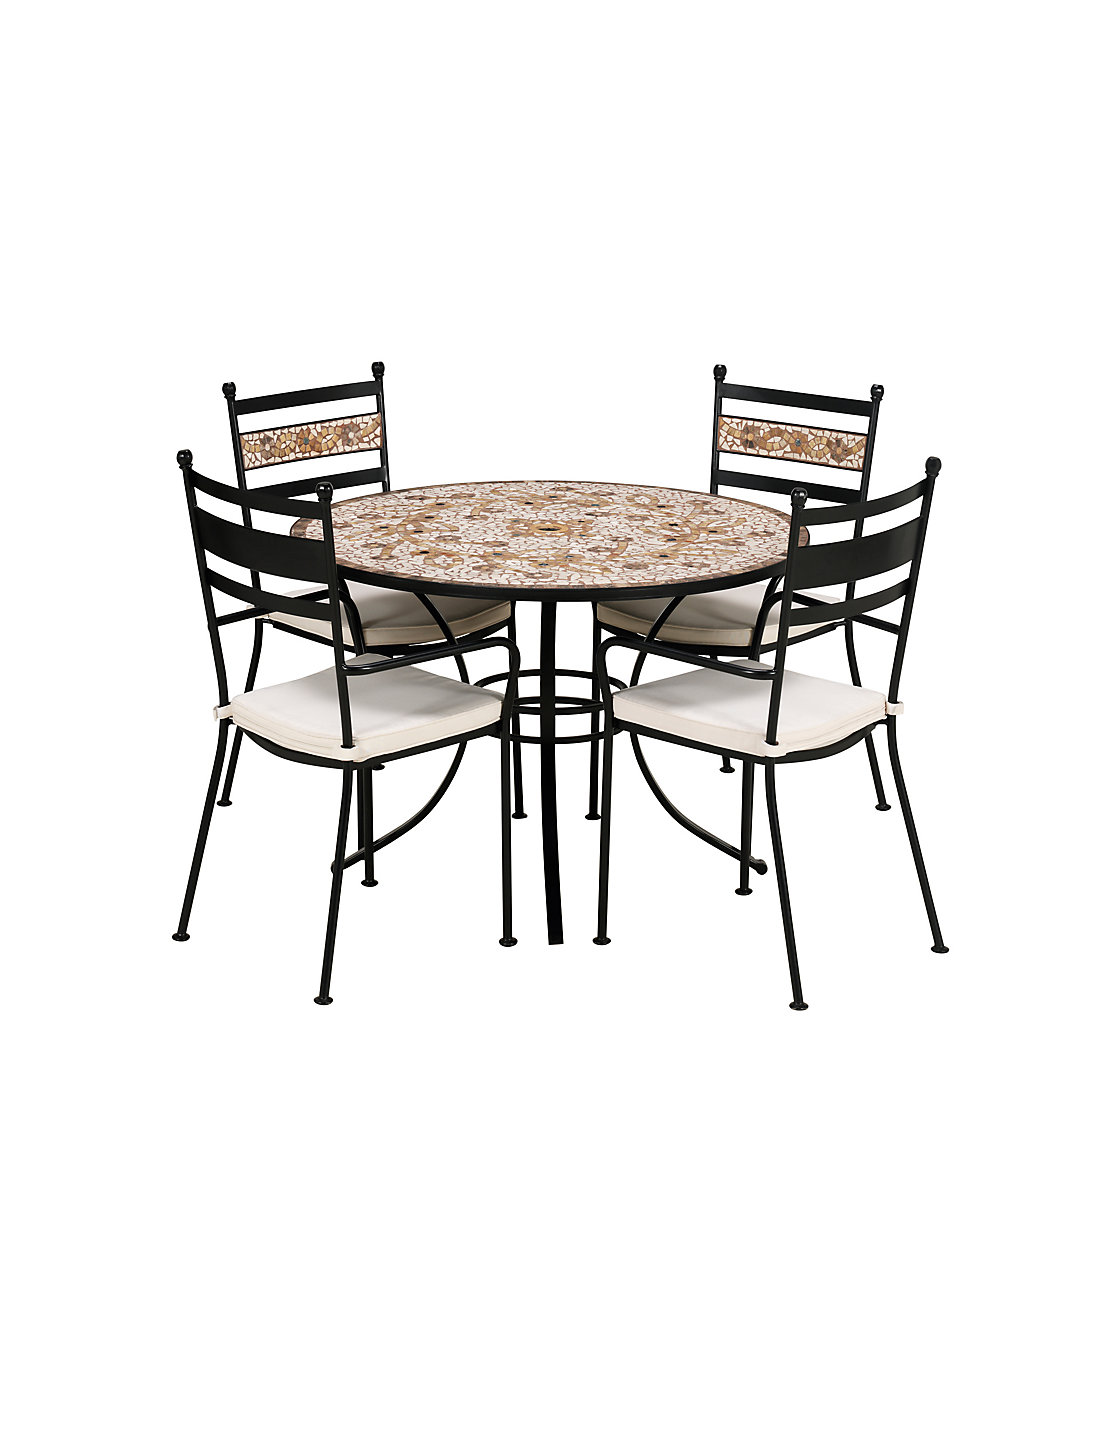 Marvellous Verona Dining Table   Chairs  Ms With Hot Verona Dining Table   Chairs With Delightful Vegetable Garden Raised Beds Also Walled Garden Bangor In Addition Robin Hood Gardens And Travel To Kew Gardens As Well As Toddler Garden Toys Additionally Greenhouse Garden From Marksandspencercom With   Hot Verona Dining Table   Chairs  Ms With Delightful Verona Dining Table   Chairs And Marvellous Vegetable Garden Raised Beds Also Walled Garden Bangor In Addition Robin Hood Gardens From Marksandspencercom